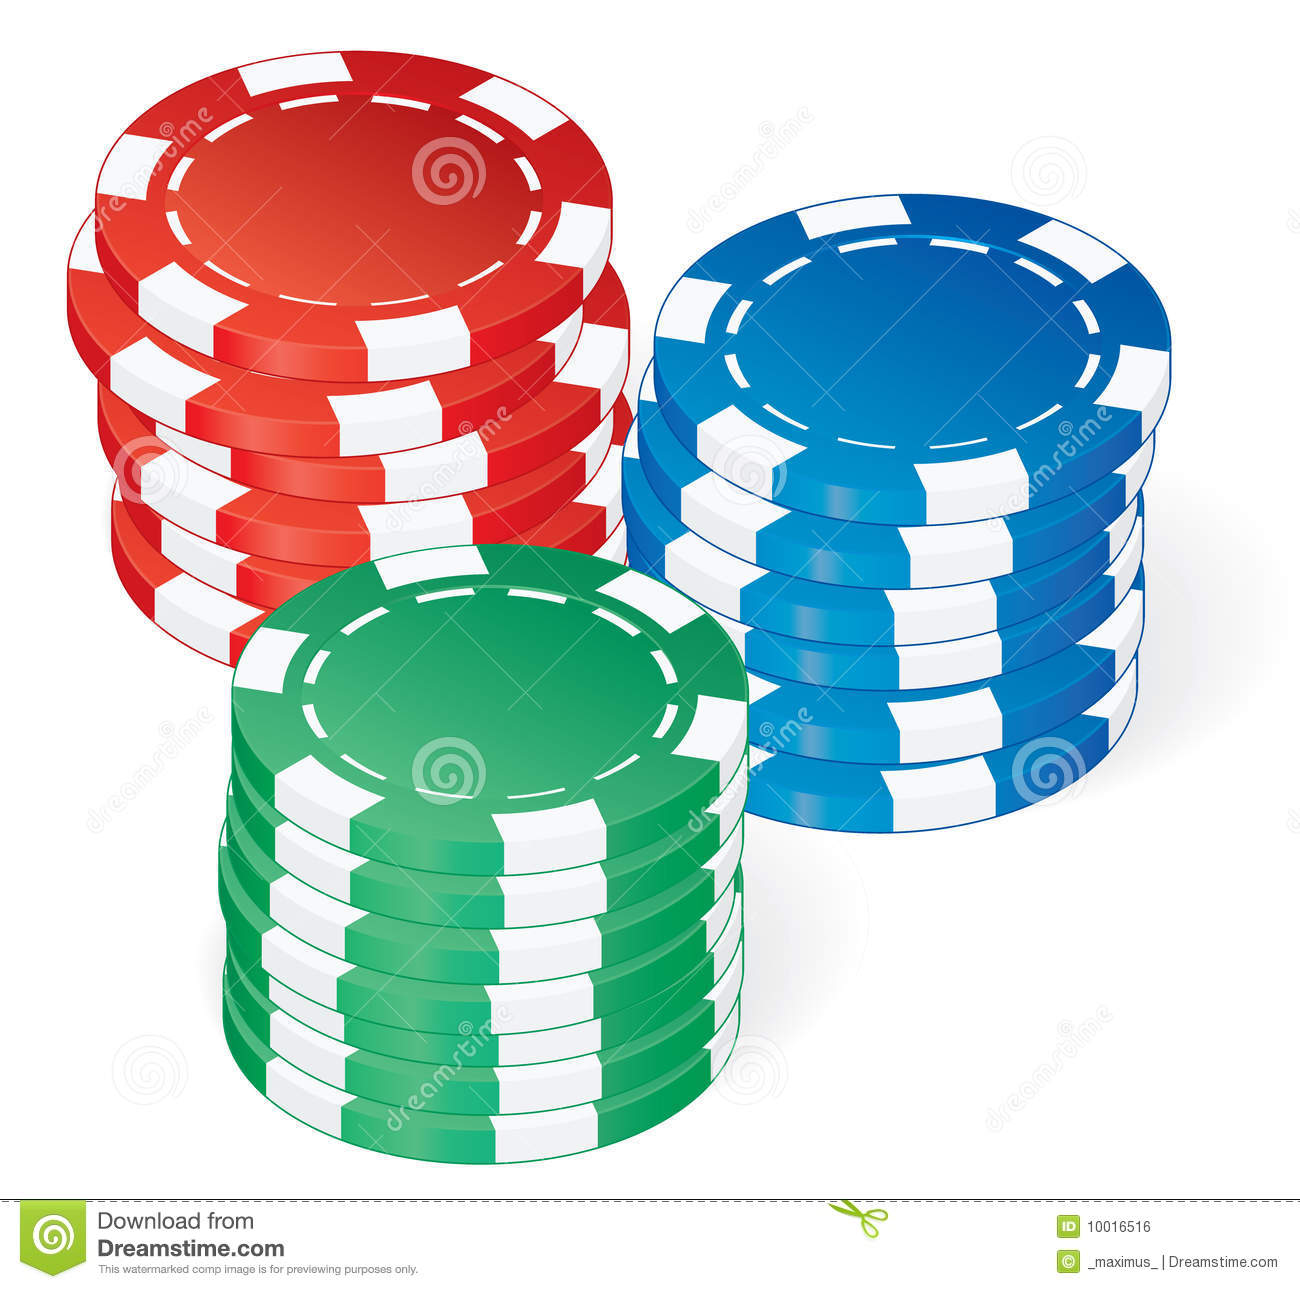 Poker chips clipart / Lake cumberland poker run 2018.